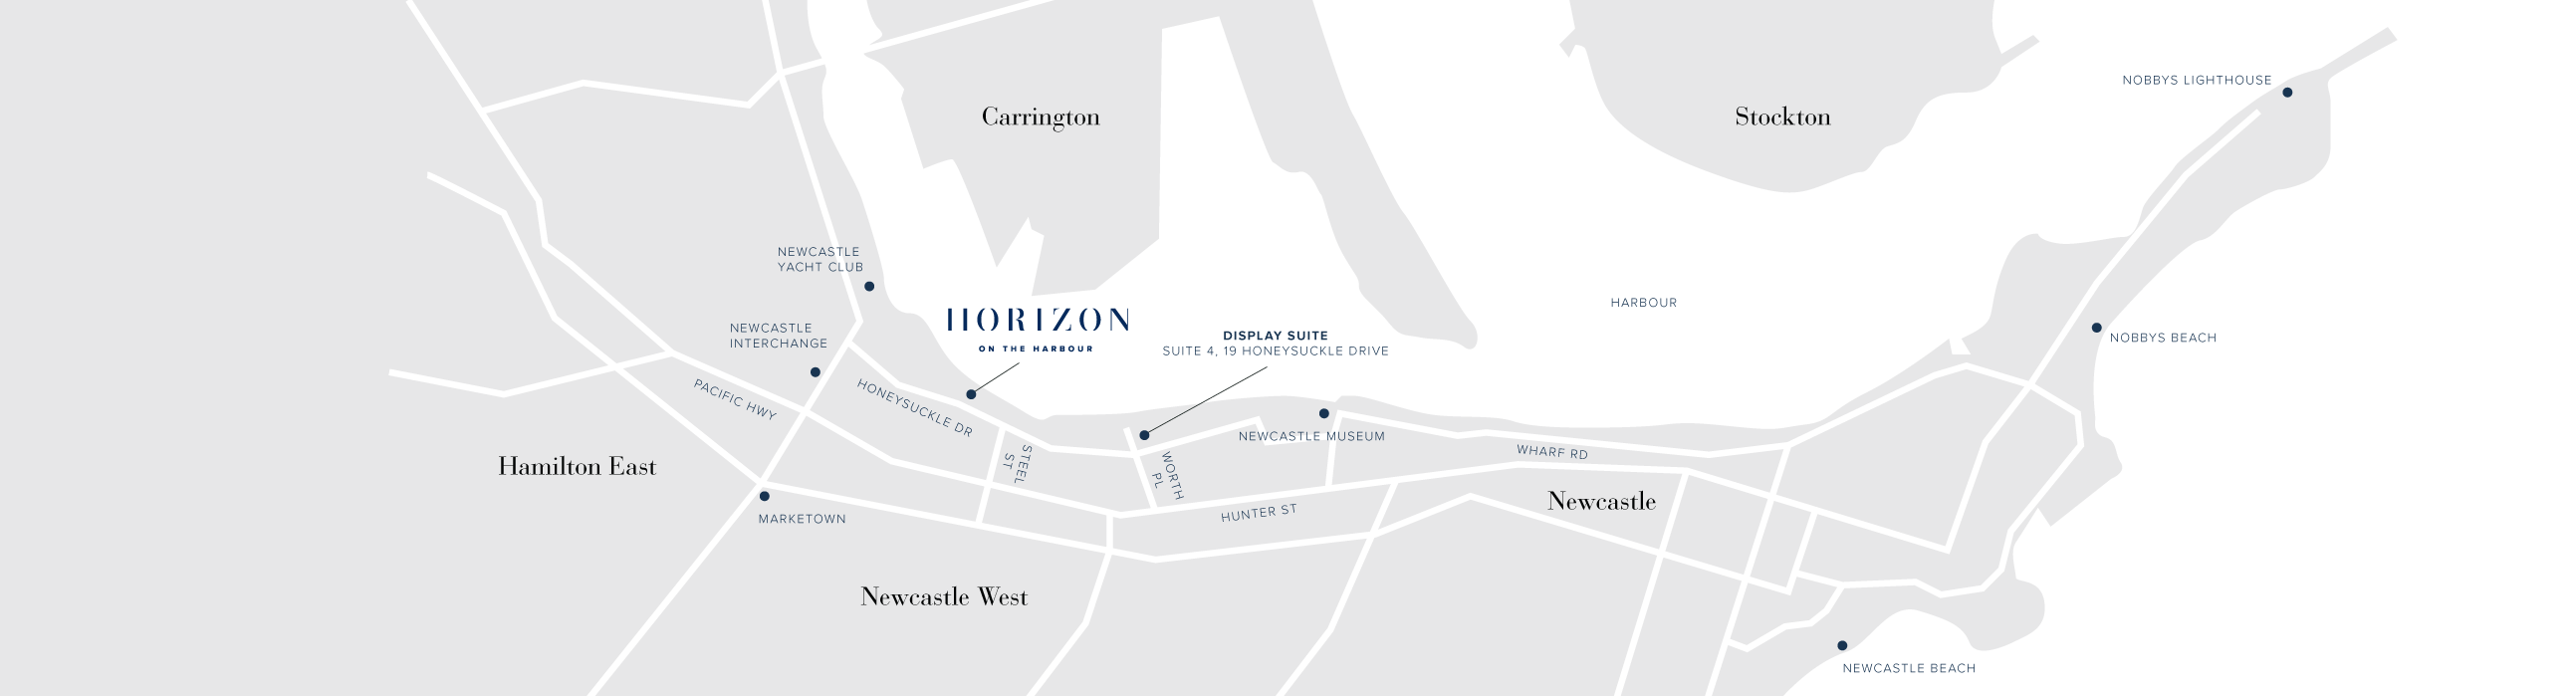 //horizonontheharbour.com.au/wp-content/uploads/2020/11/Newcastle-map-23.11.20.png